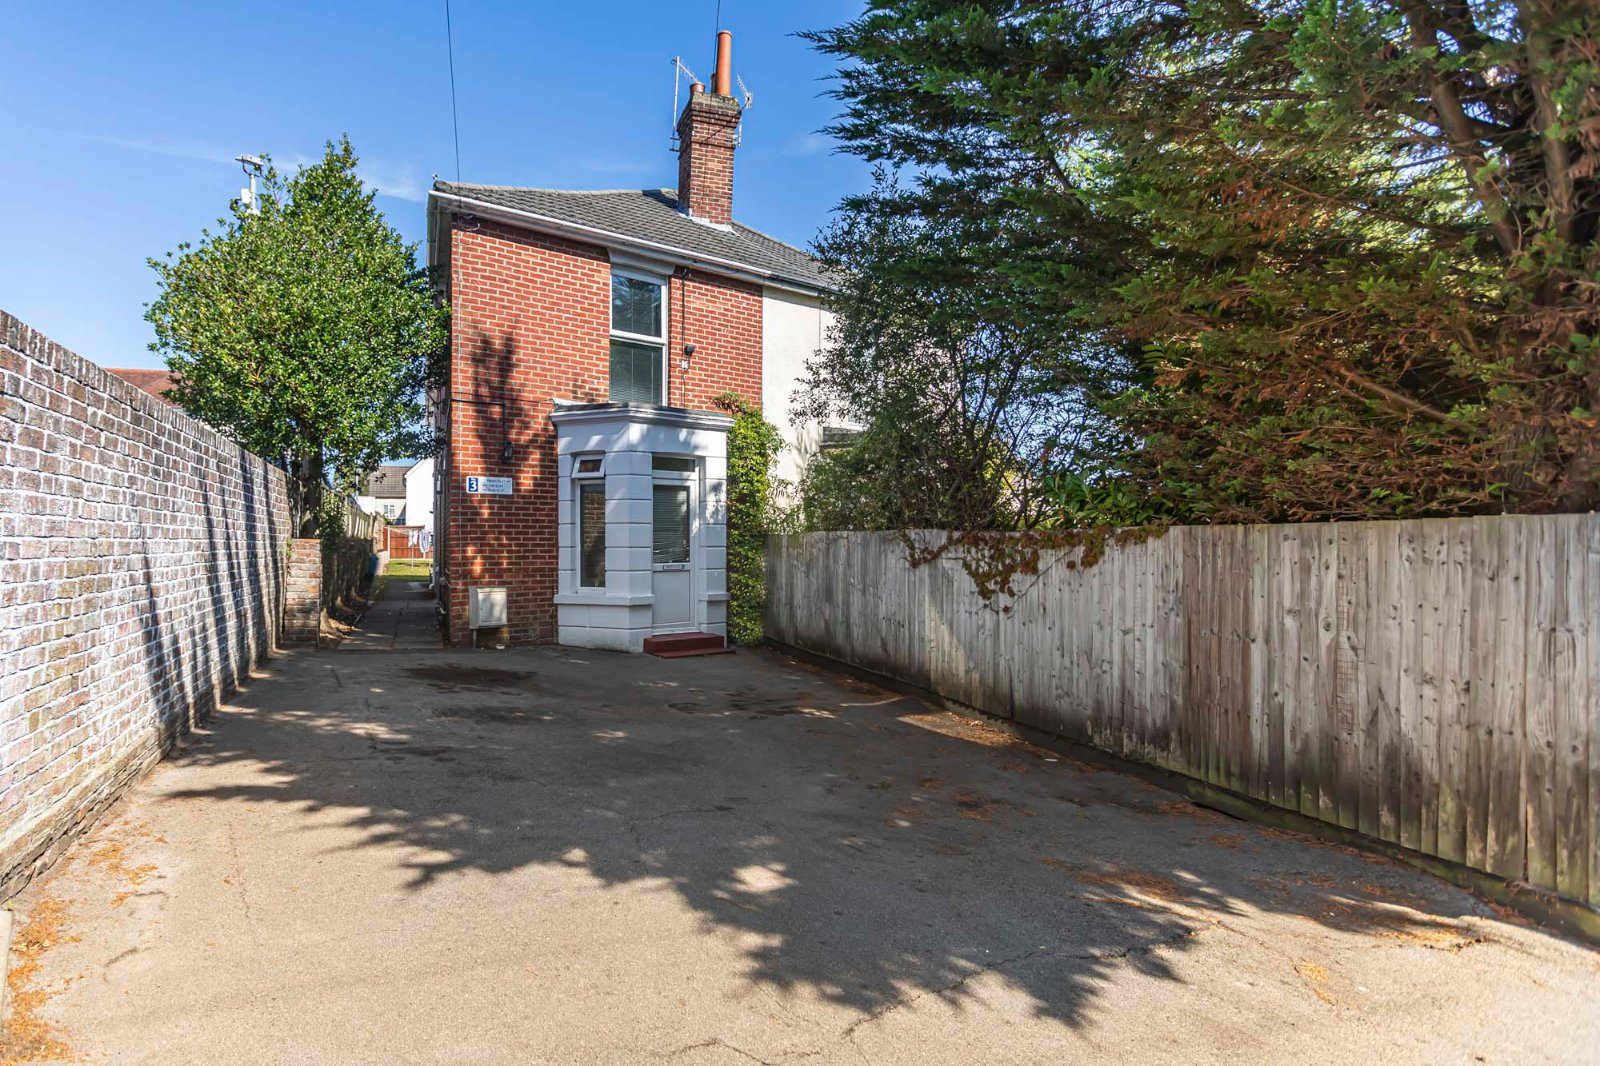 3 bed apartment for sale in North Lodge Road, Penn Hill - Property Image 1